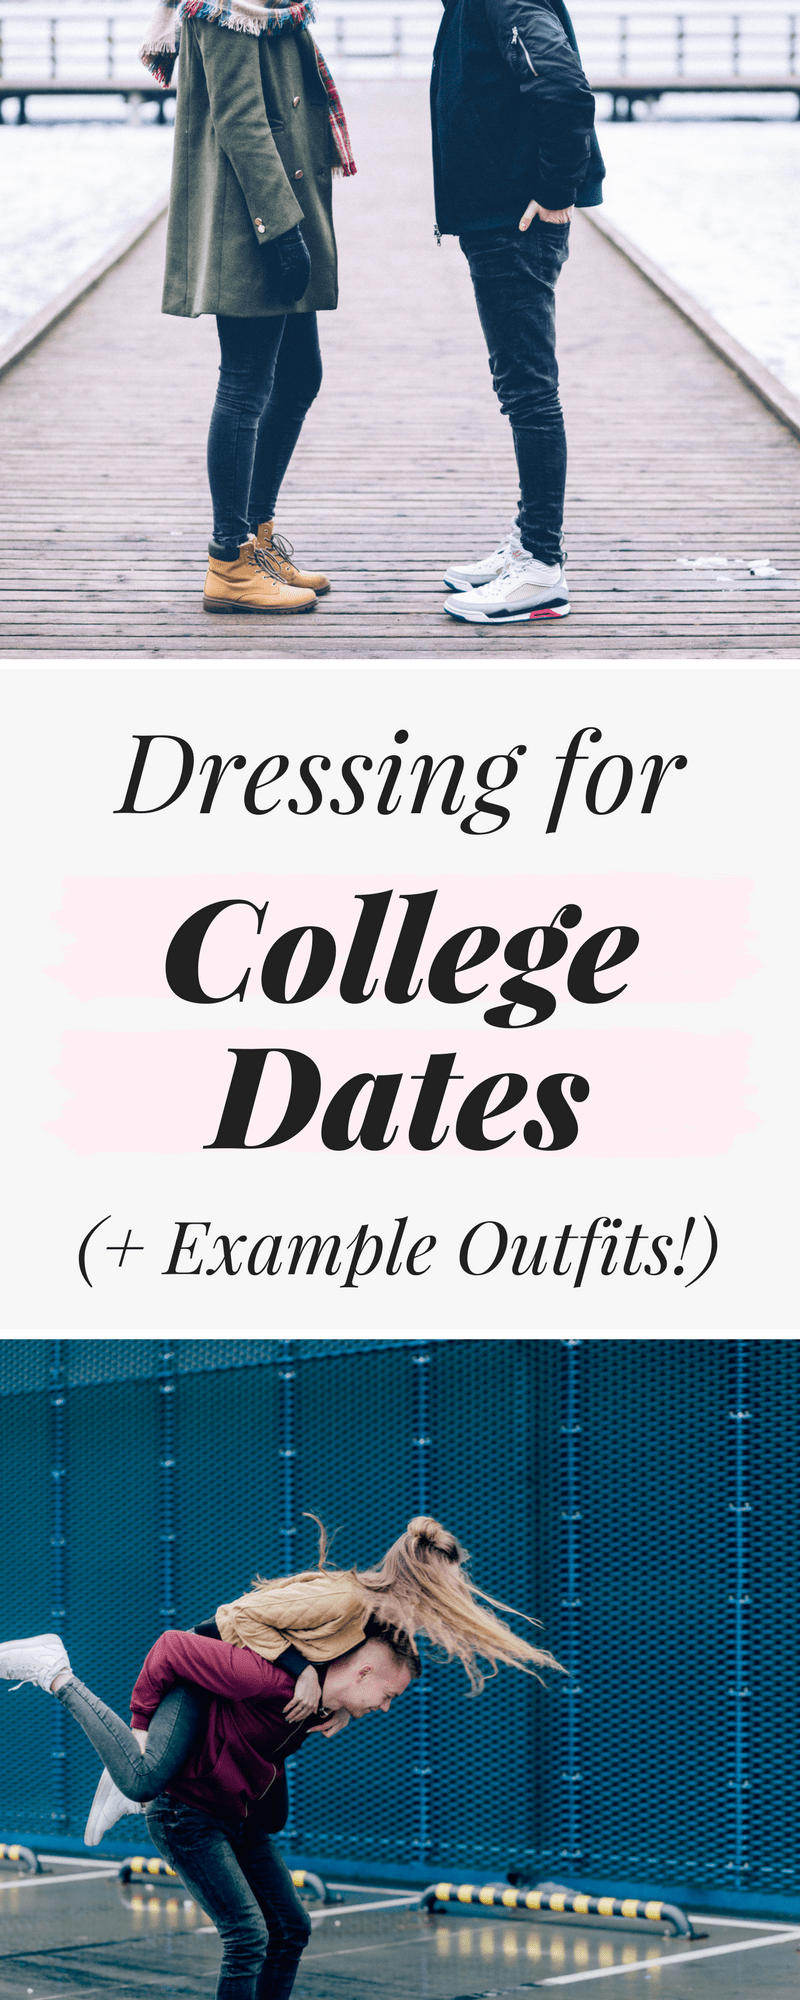 What to wear on a date in college: Outfits for first dates, study dates, and dining hall dates